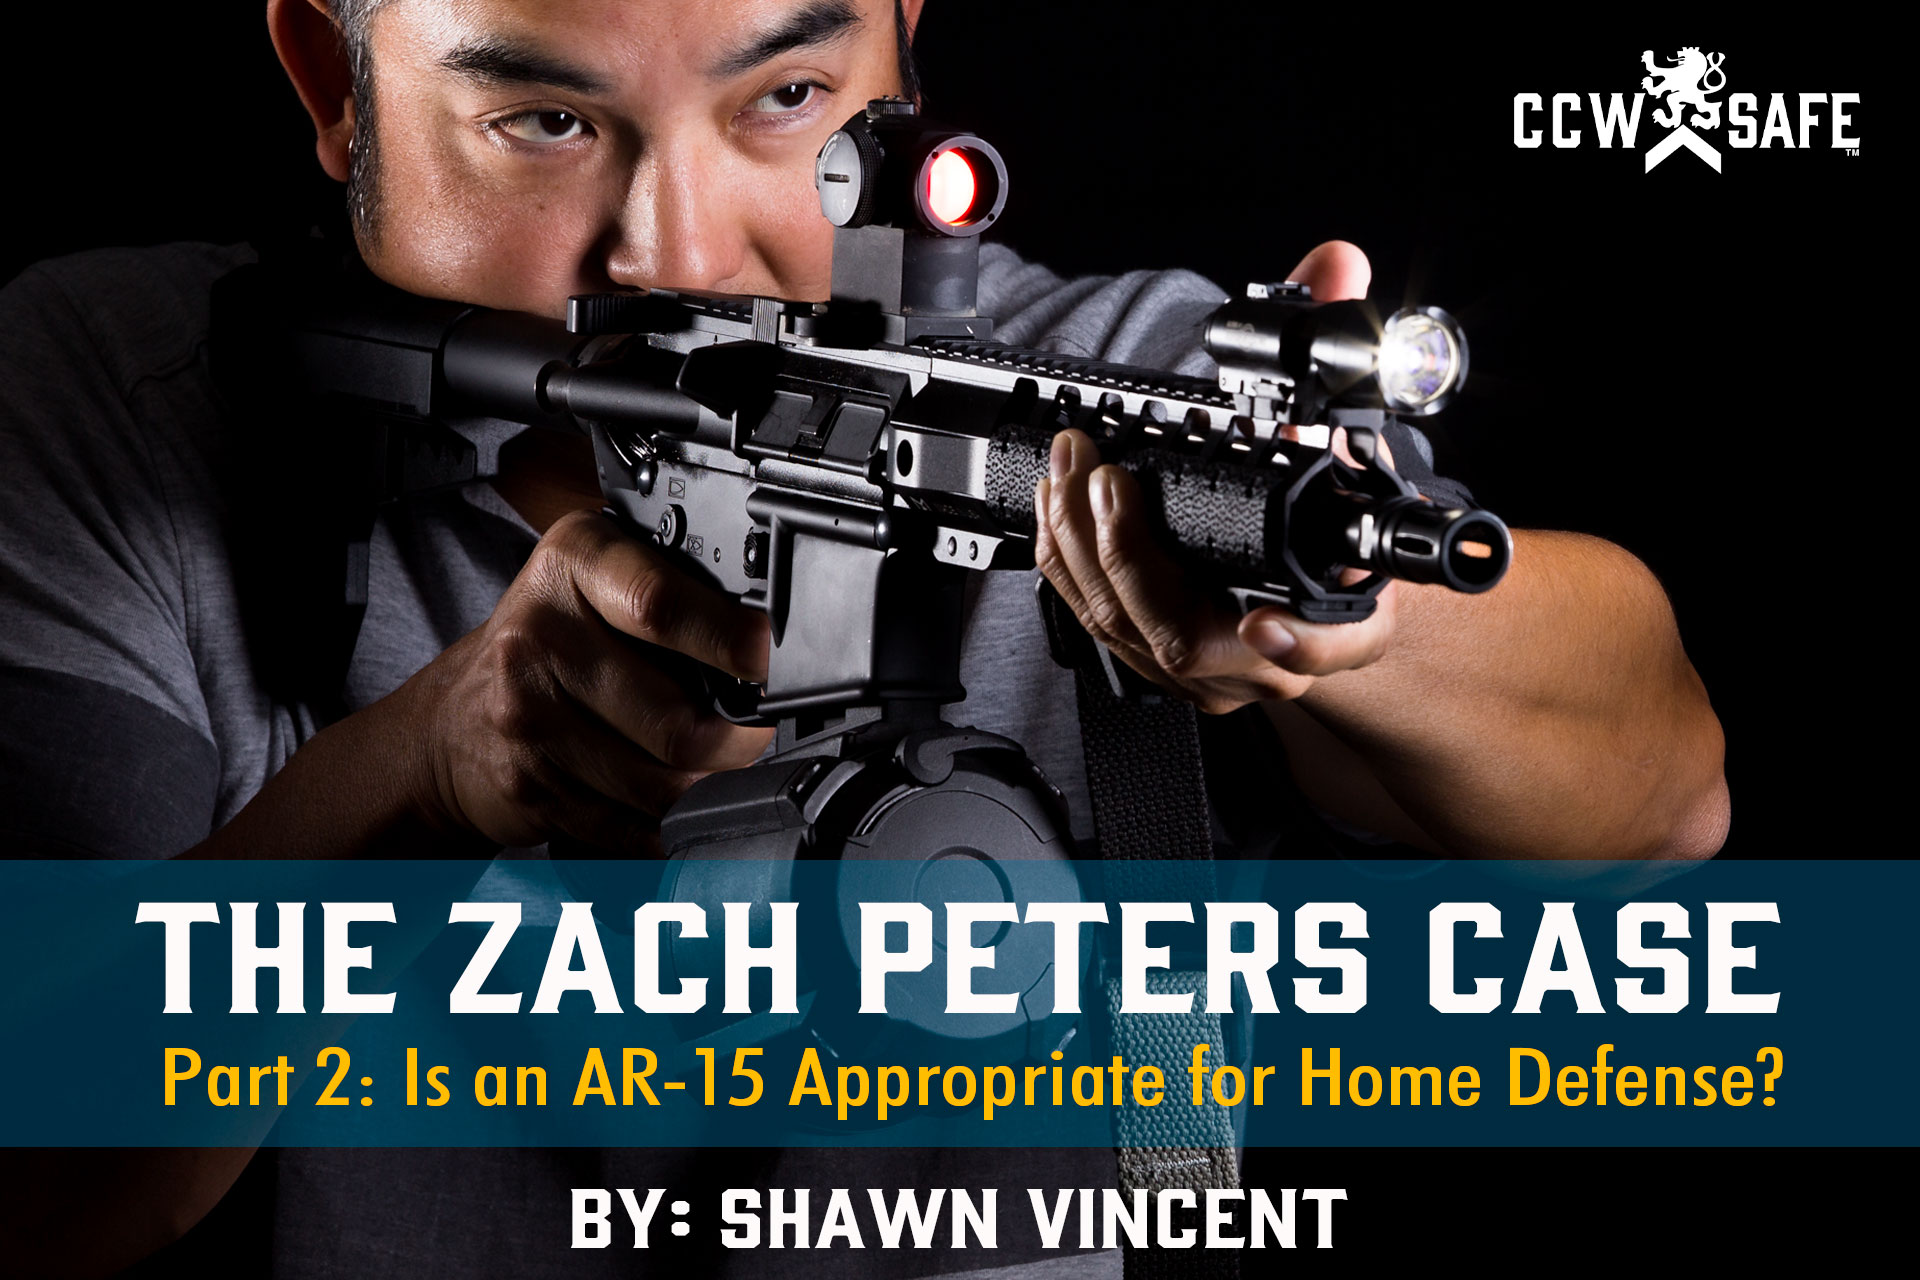 The Zach Peters Case Part 2: Is an AR-15 Appropriate for Home Defense?